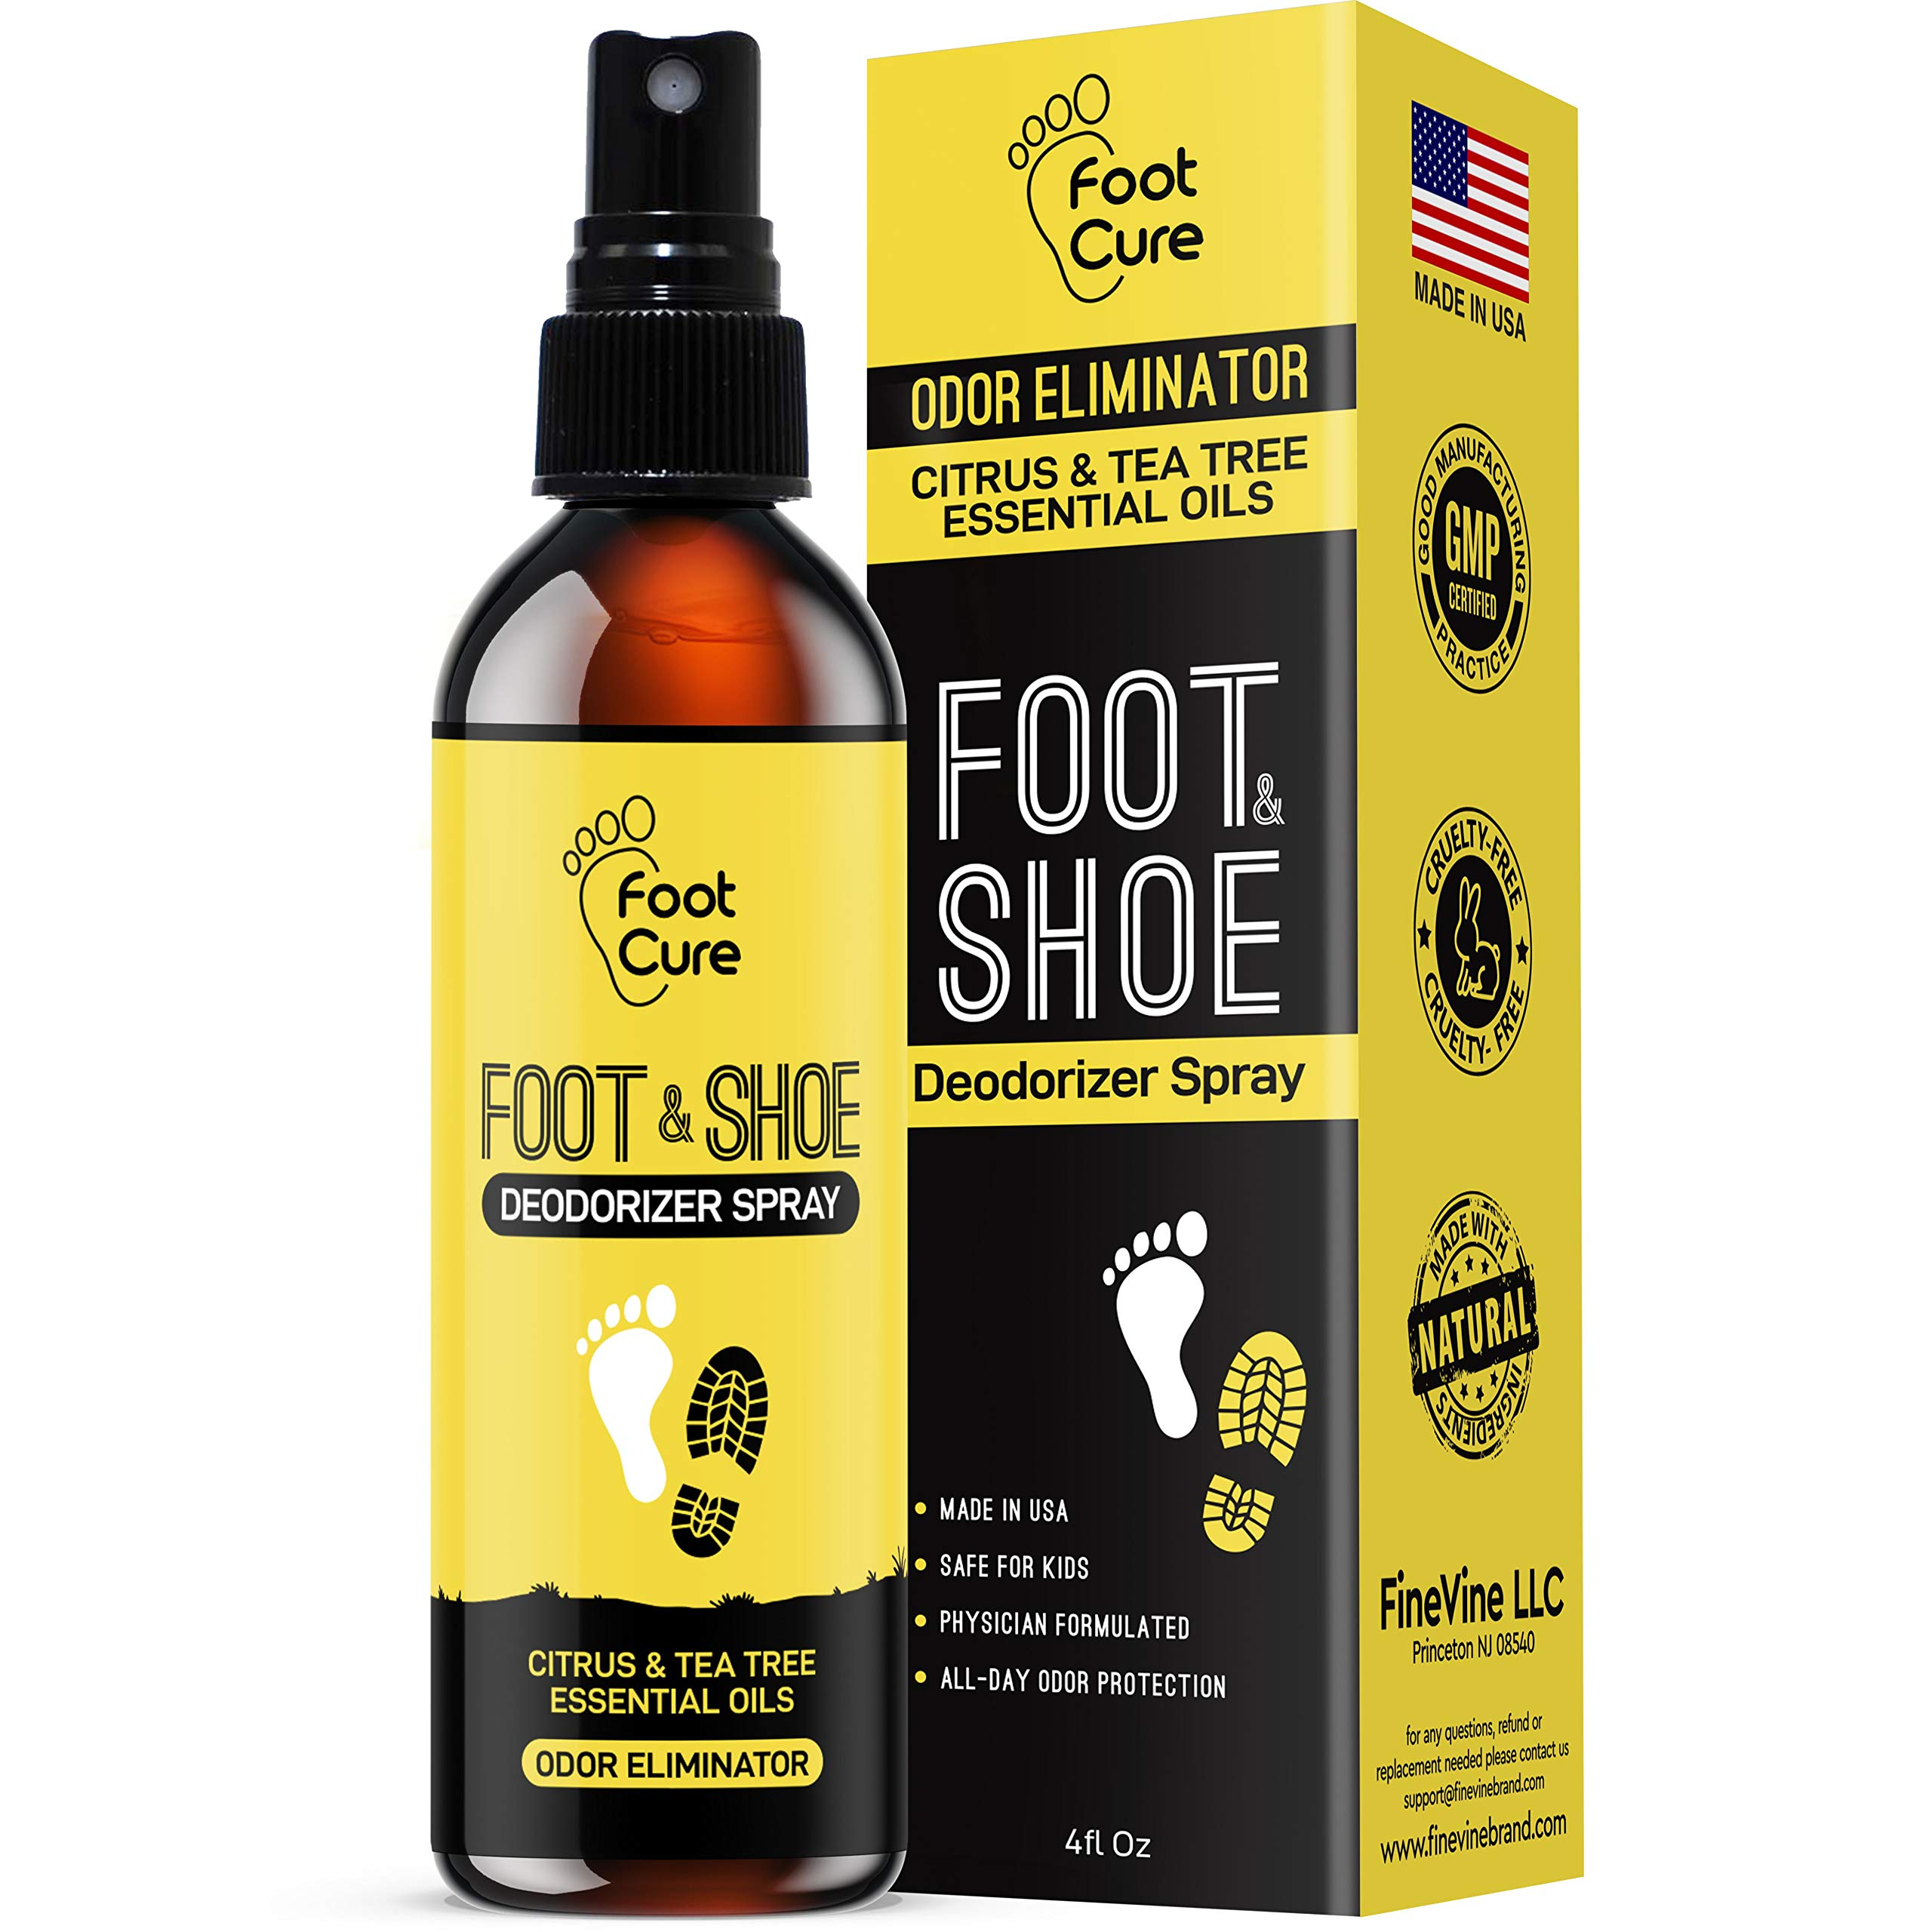 All Natural Tea Tree Oil & Citrus Shoe Deodorizer| Shoe Spray Eliminates Odor Causing Germs Leaving You Fresh| Shoe Spray Deodorizer Made in USA| Foot Spray for All Shoe Types| Foot Deodorant Spray by FOOT CURE